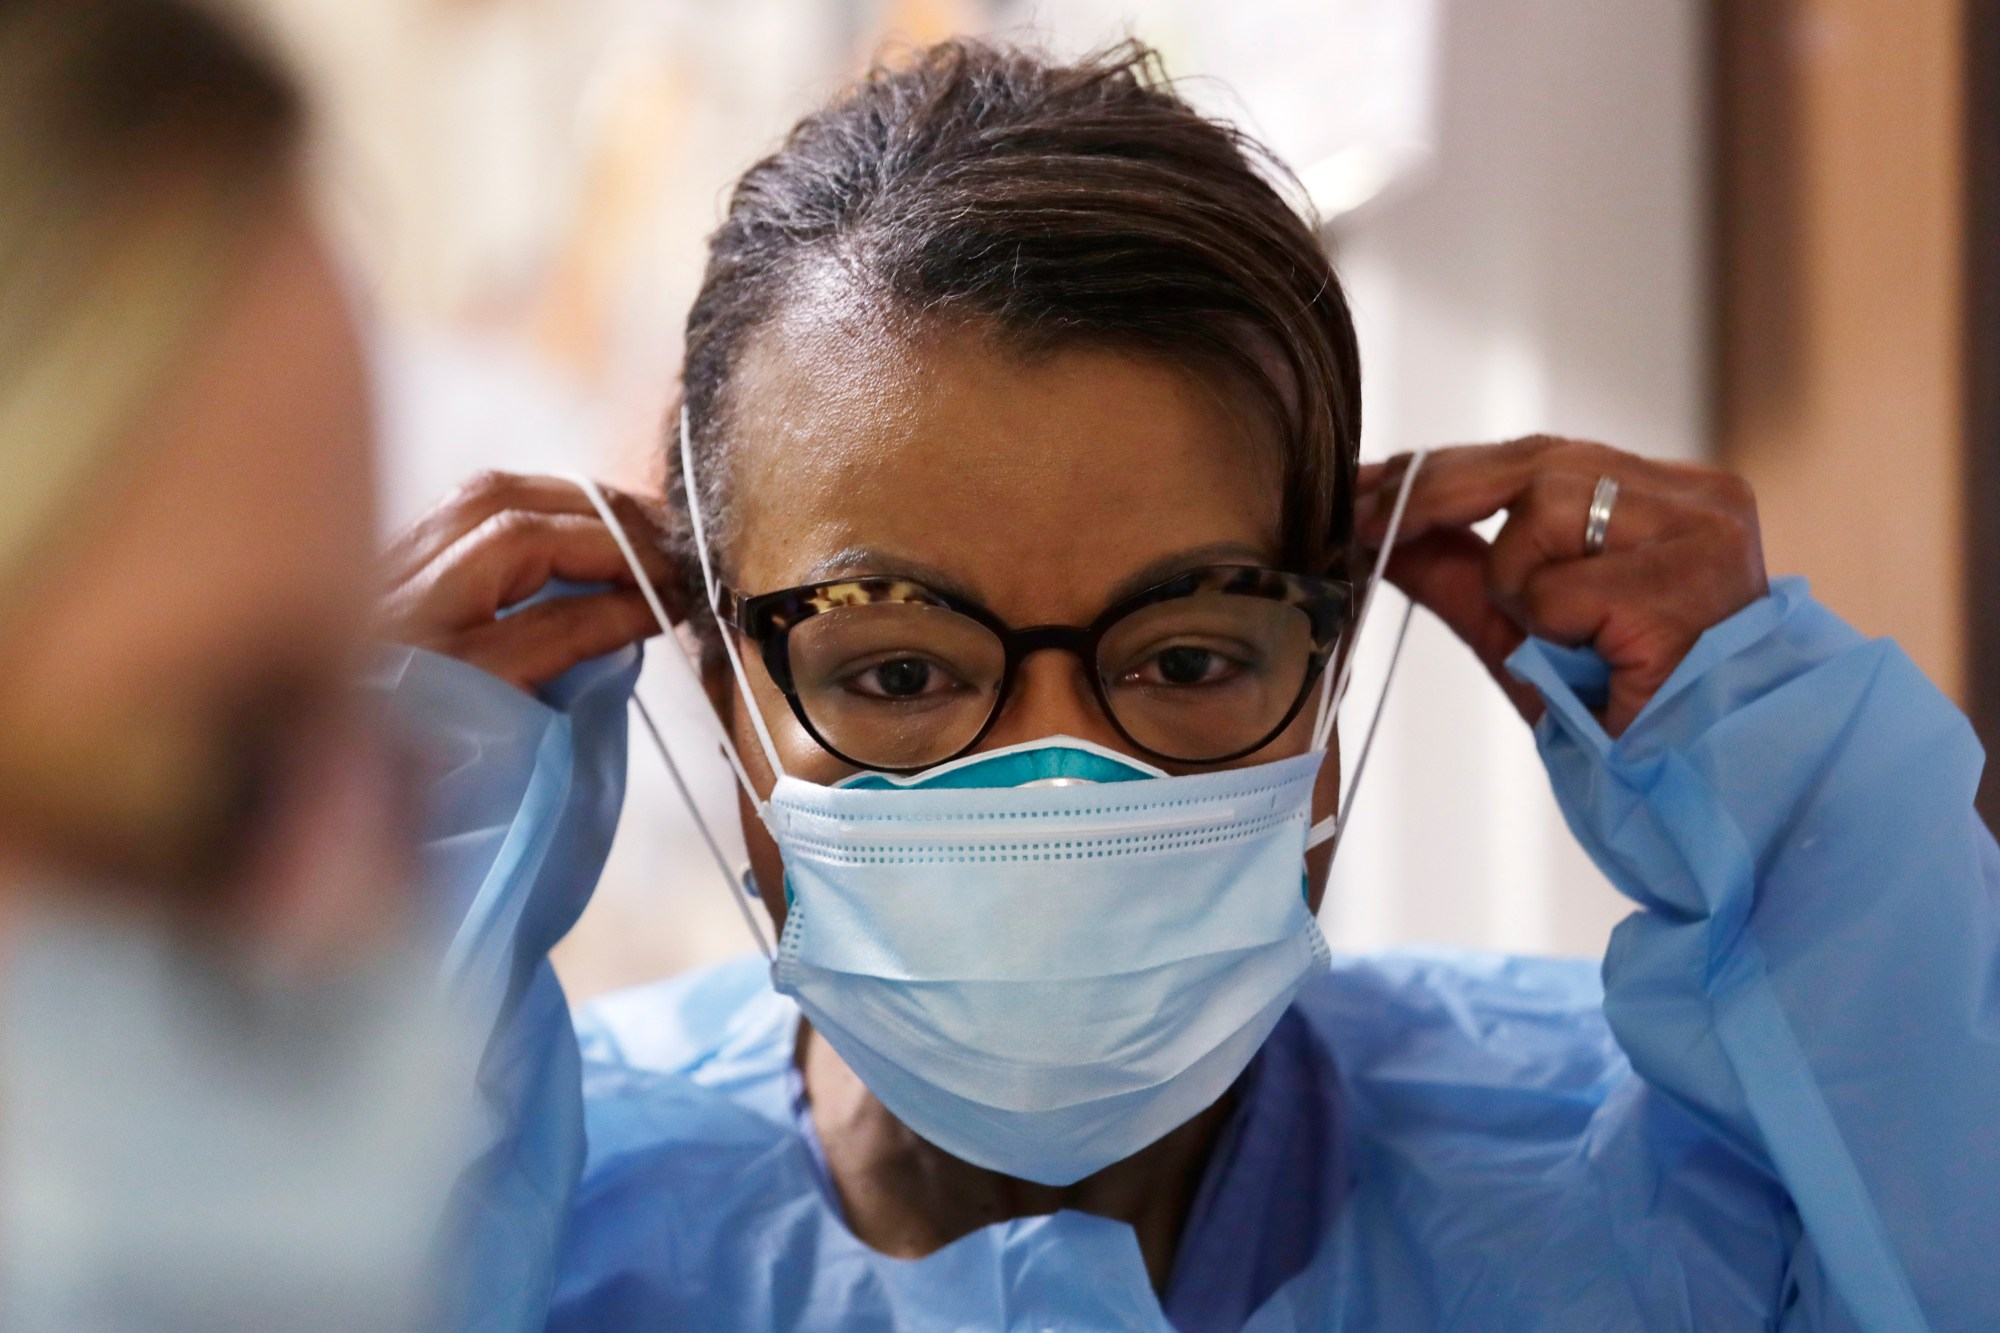 In this Friday, May 8, 2020 file photo, a respiratory therapist pulls on a second mask over her N95 mask before adding a face shield as she gets ready to go into a patient's room in the COVID-19 Intensive Care Unit at a hospital in Seattle. (AP Photo/Elaine Thompson)